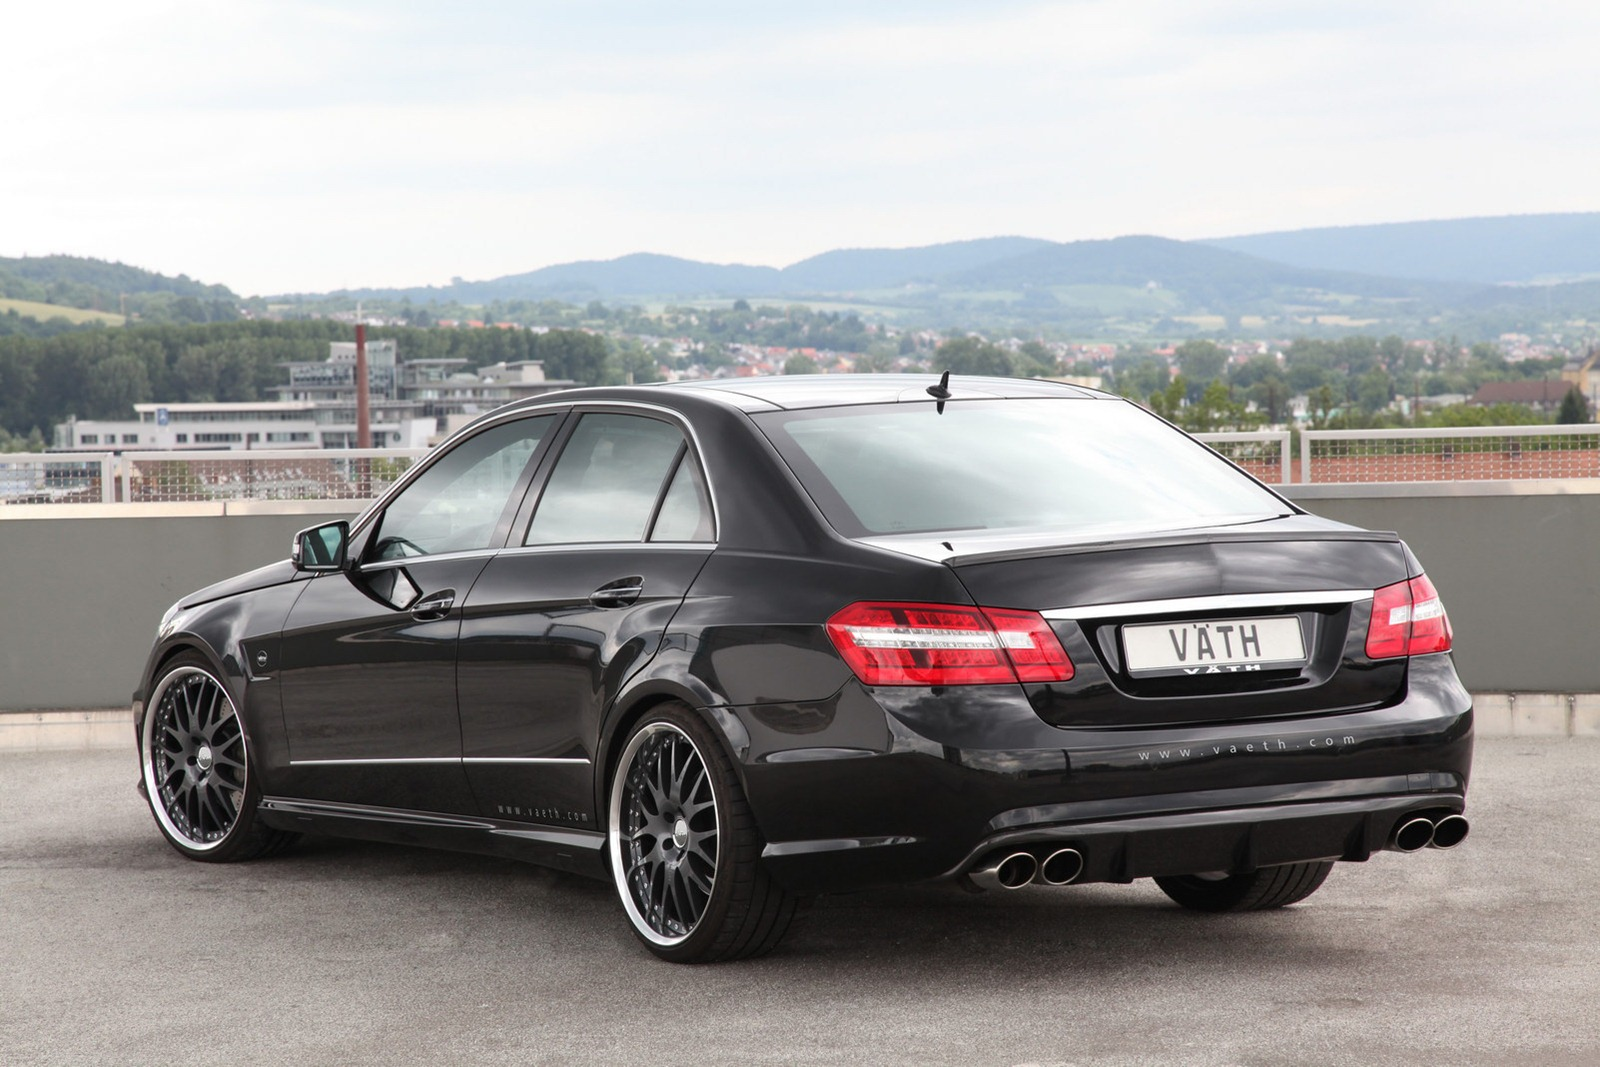 Mercedes E500 tuned by VATH